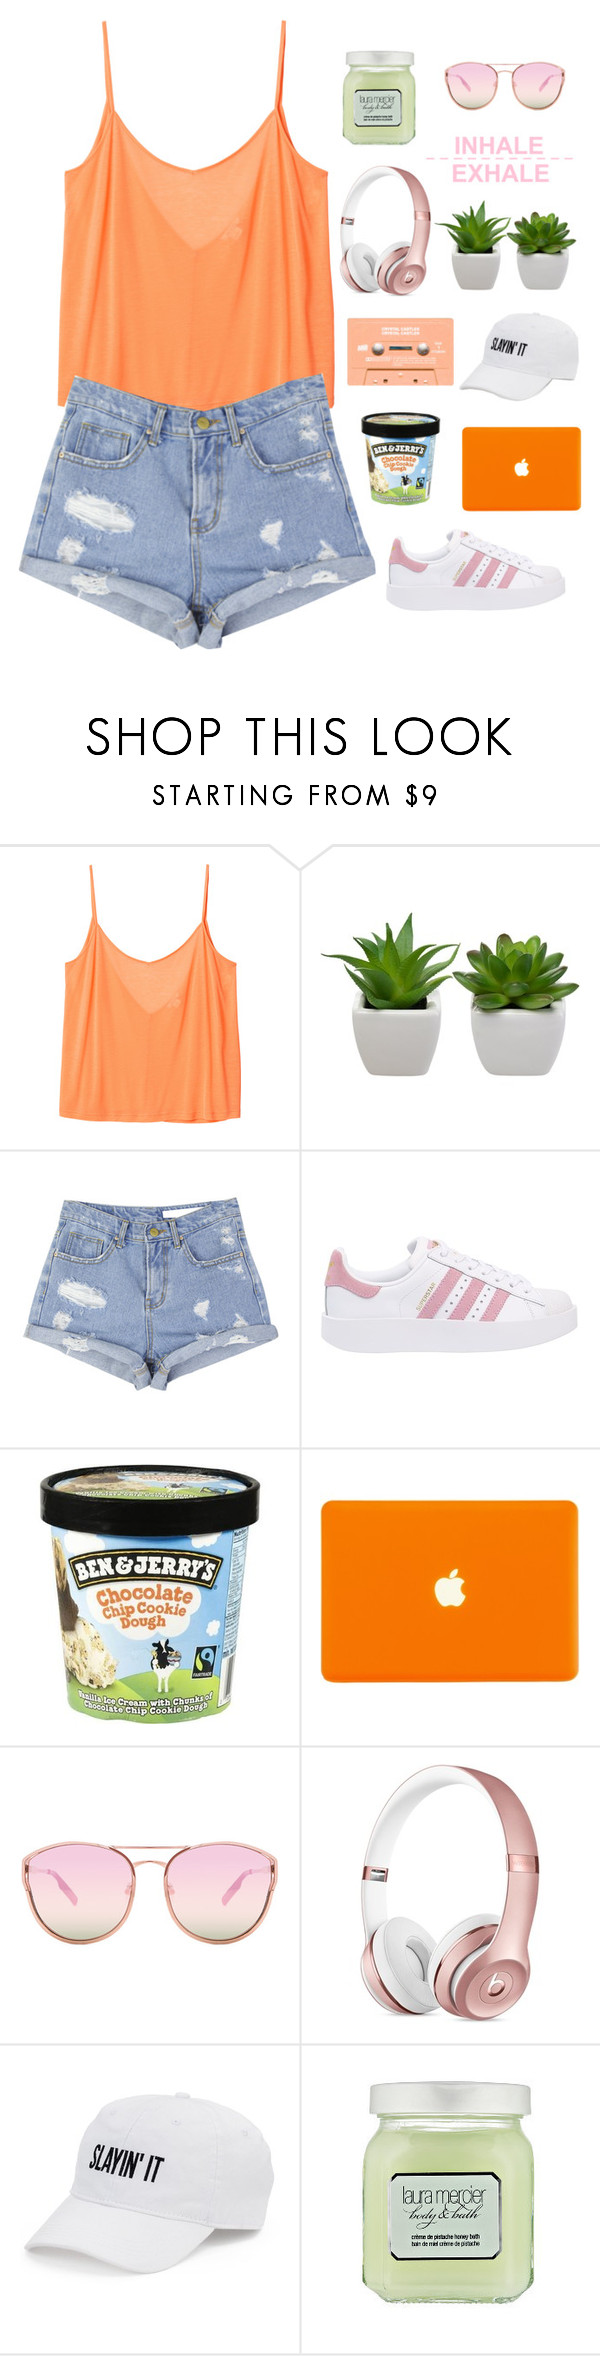 """""""Who Cares If One More Light Goes Out? Well I Do"""" by just-a-reject-x ❤ liked on Polyvore featuring Monki, StyleNanda, adidas Originals, Quay, SO, Laura Mercier, country and liasfashion"""